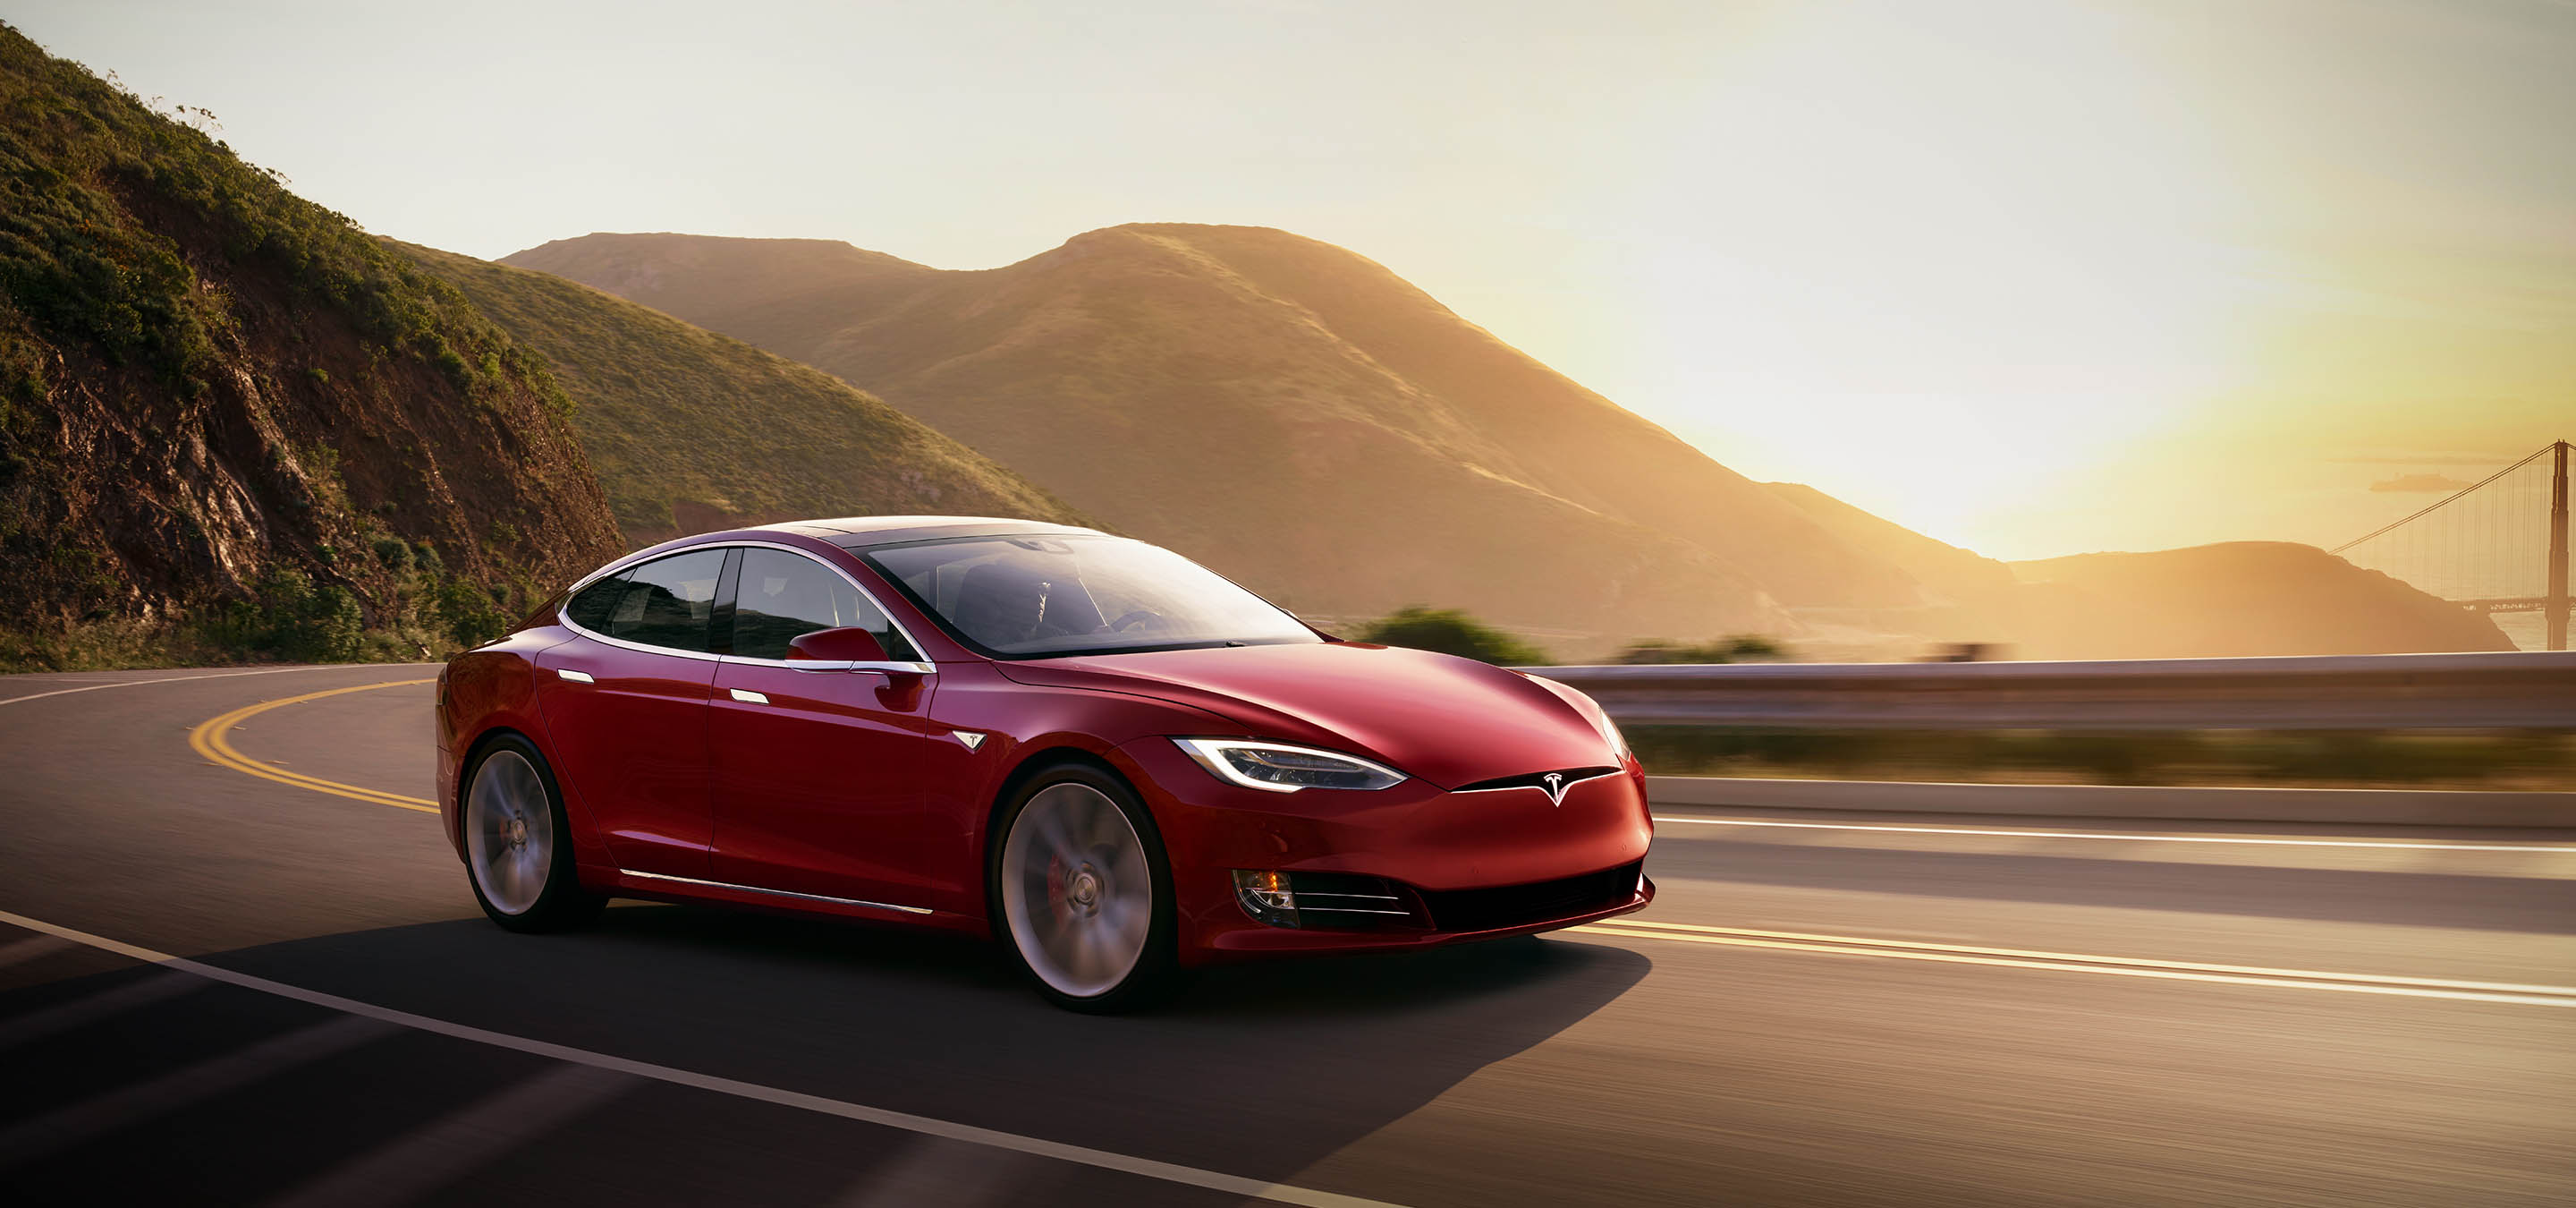 2018 Tesla Model S red sunset